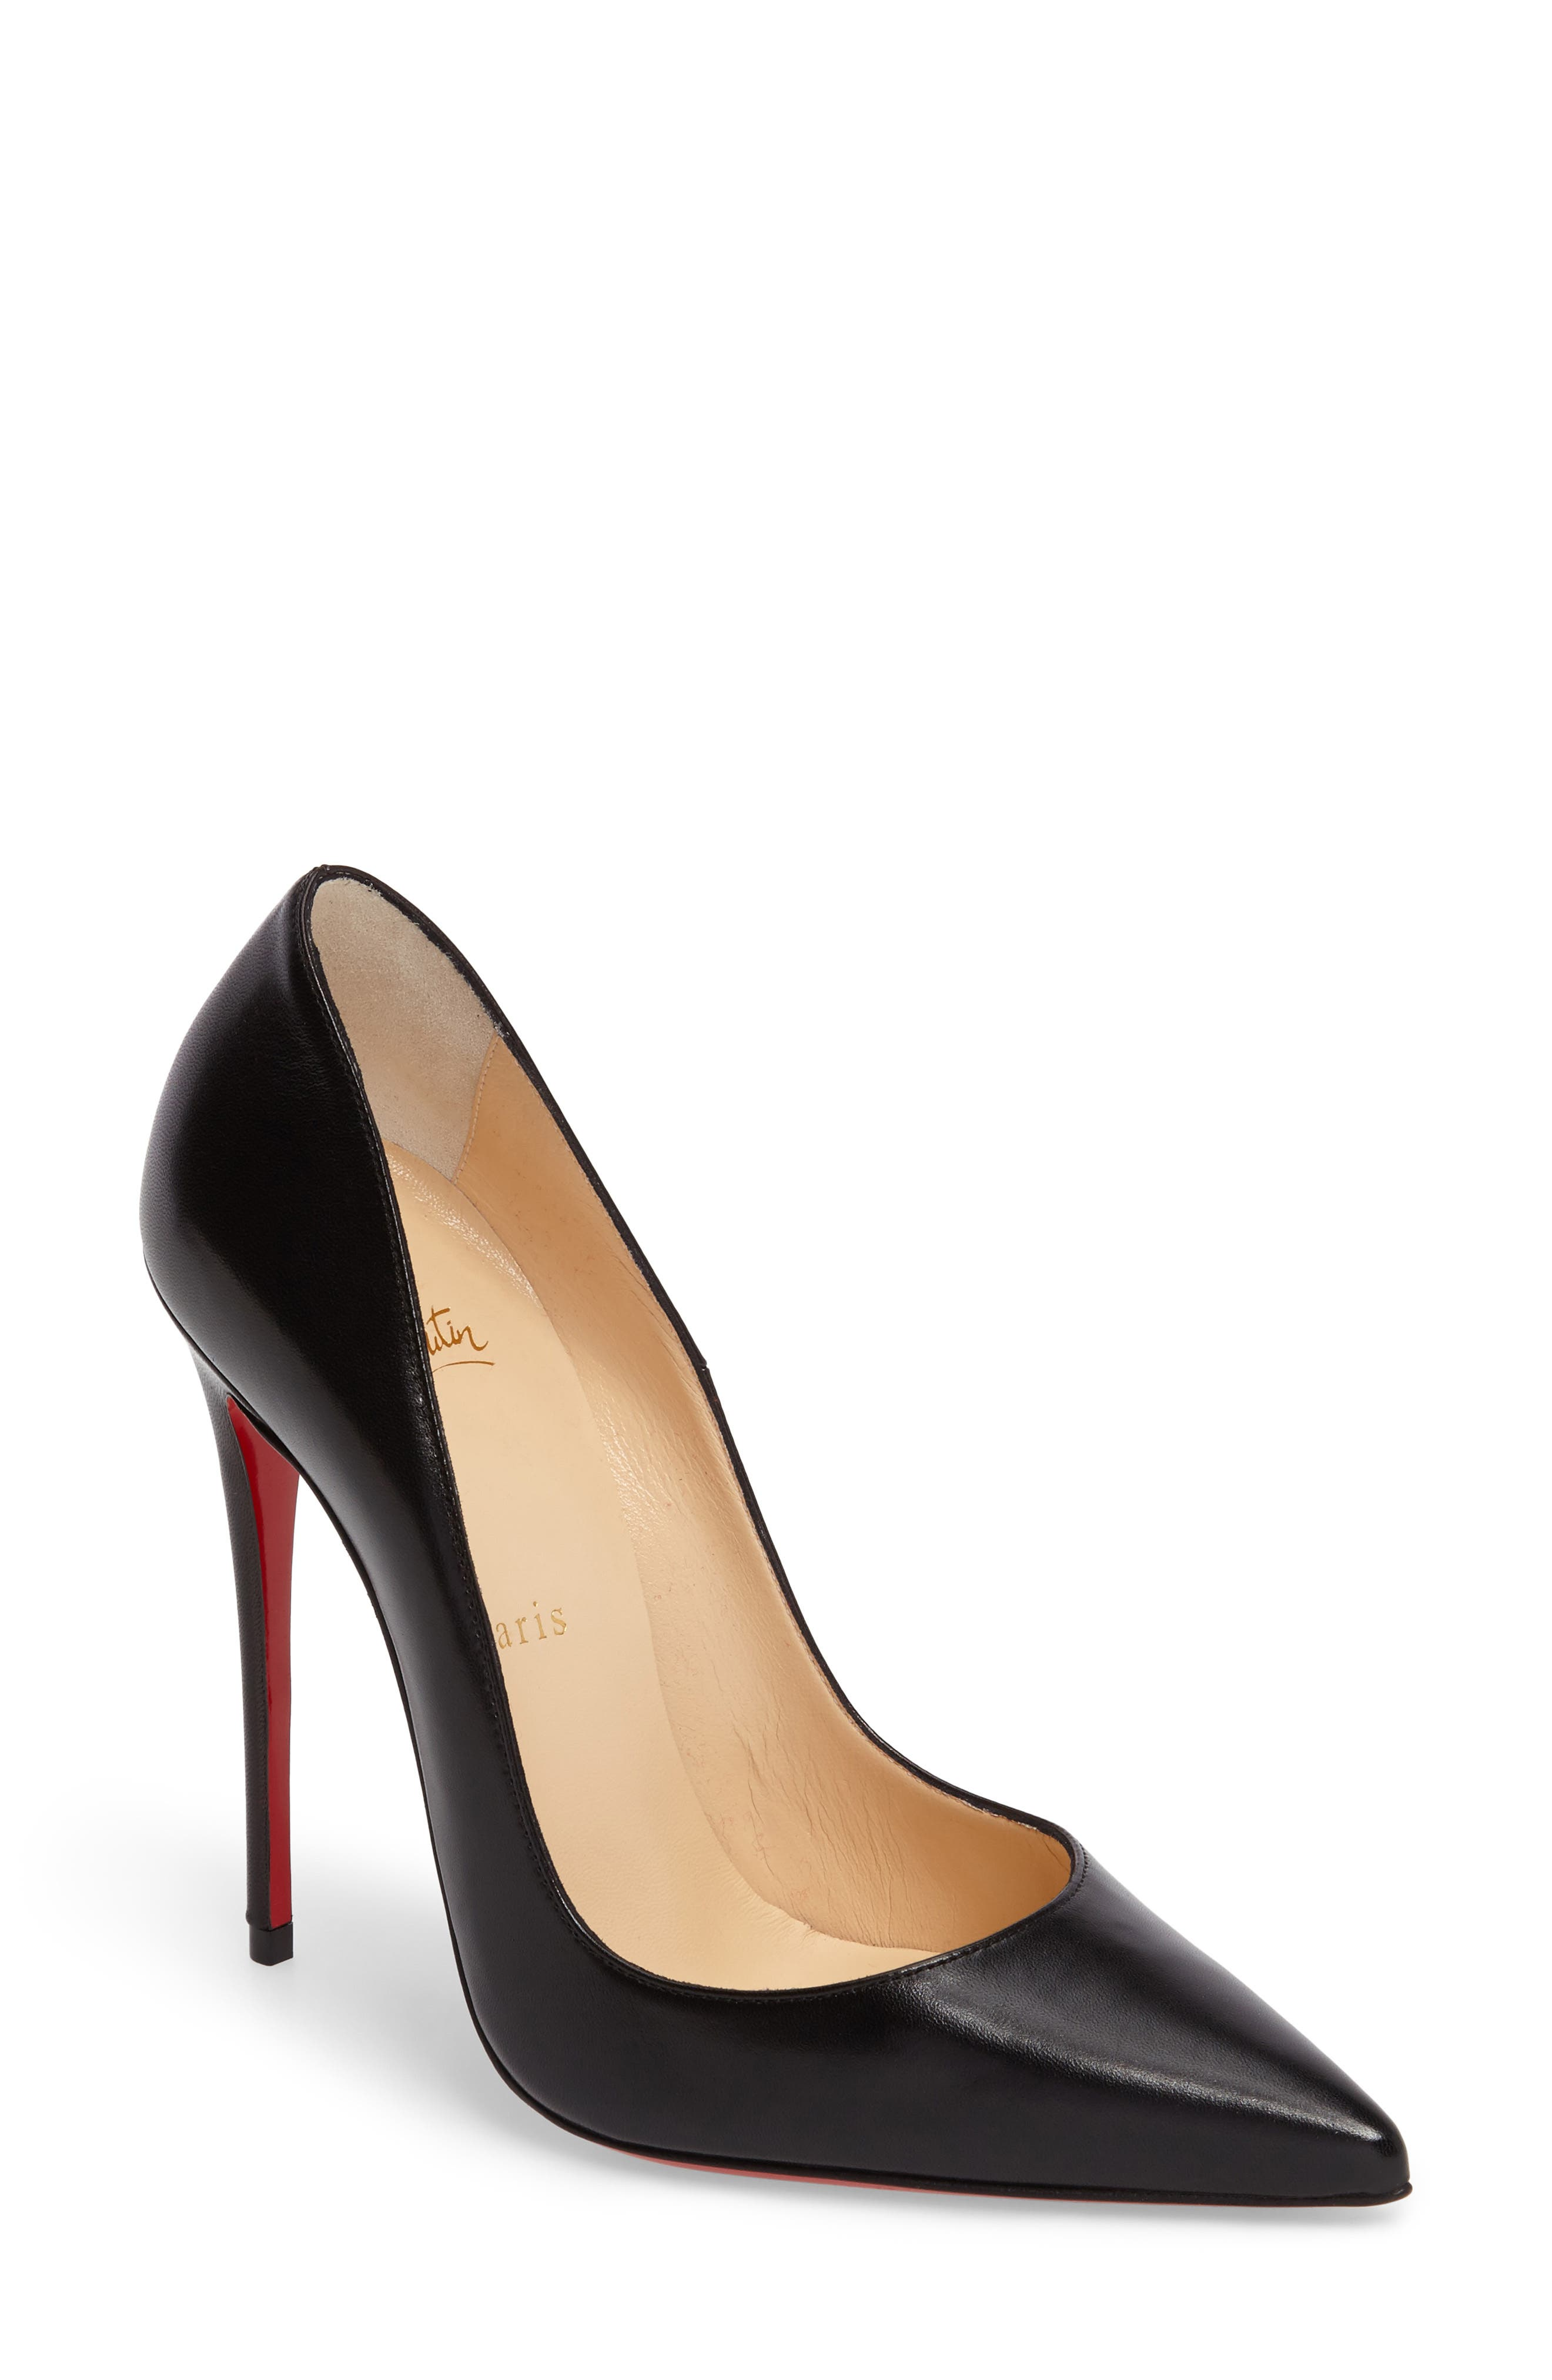 CHRISTIAN LOUBOUTIN So Kate Pointy Toe Pump, Main, color, 001